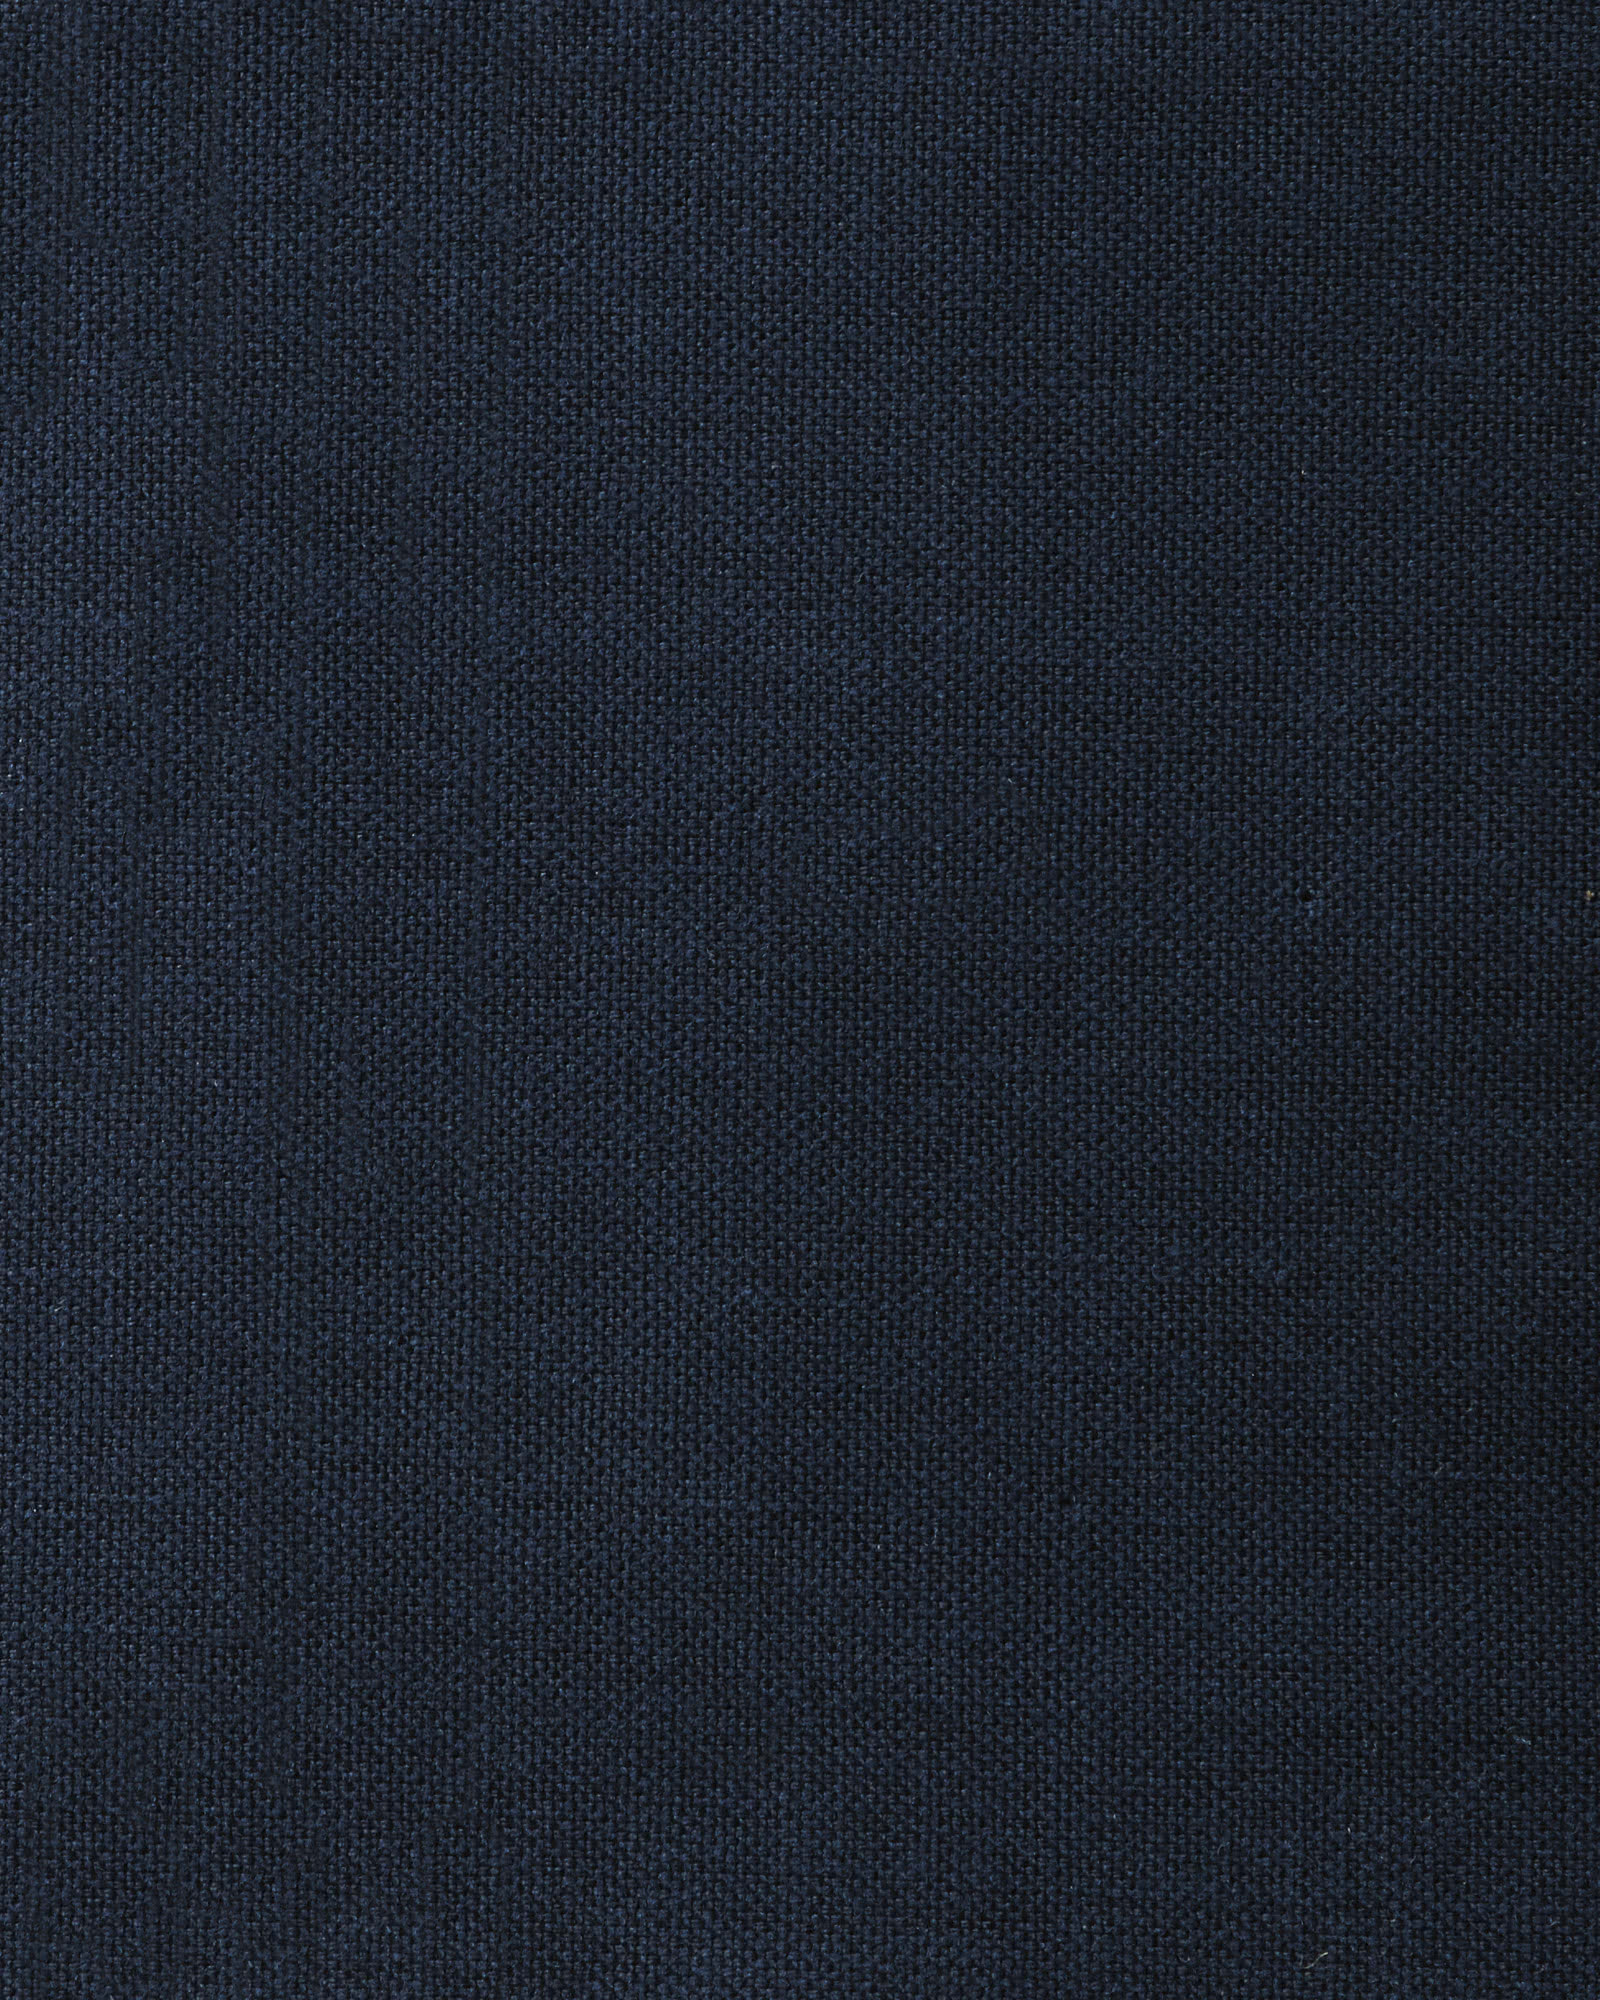 Brushed Cotton Canvas - Navy